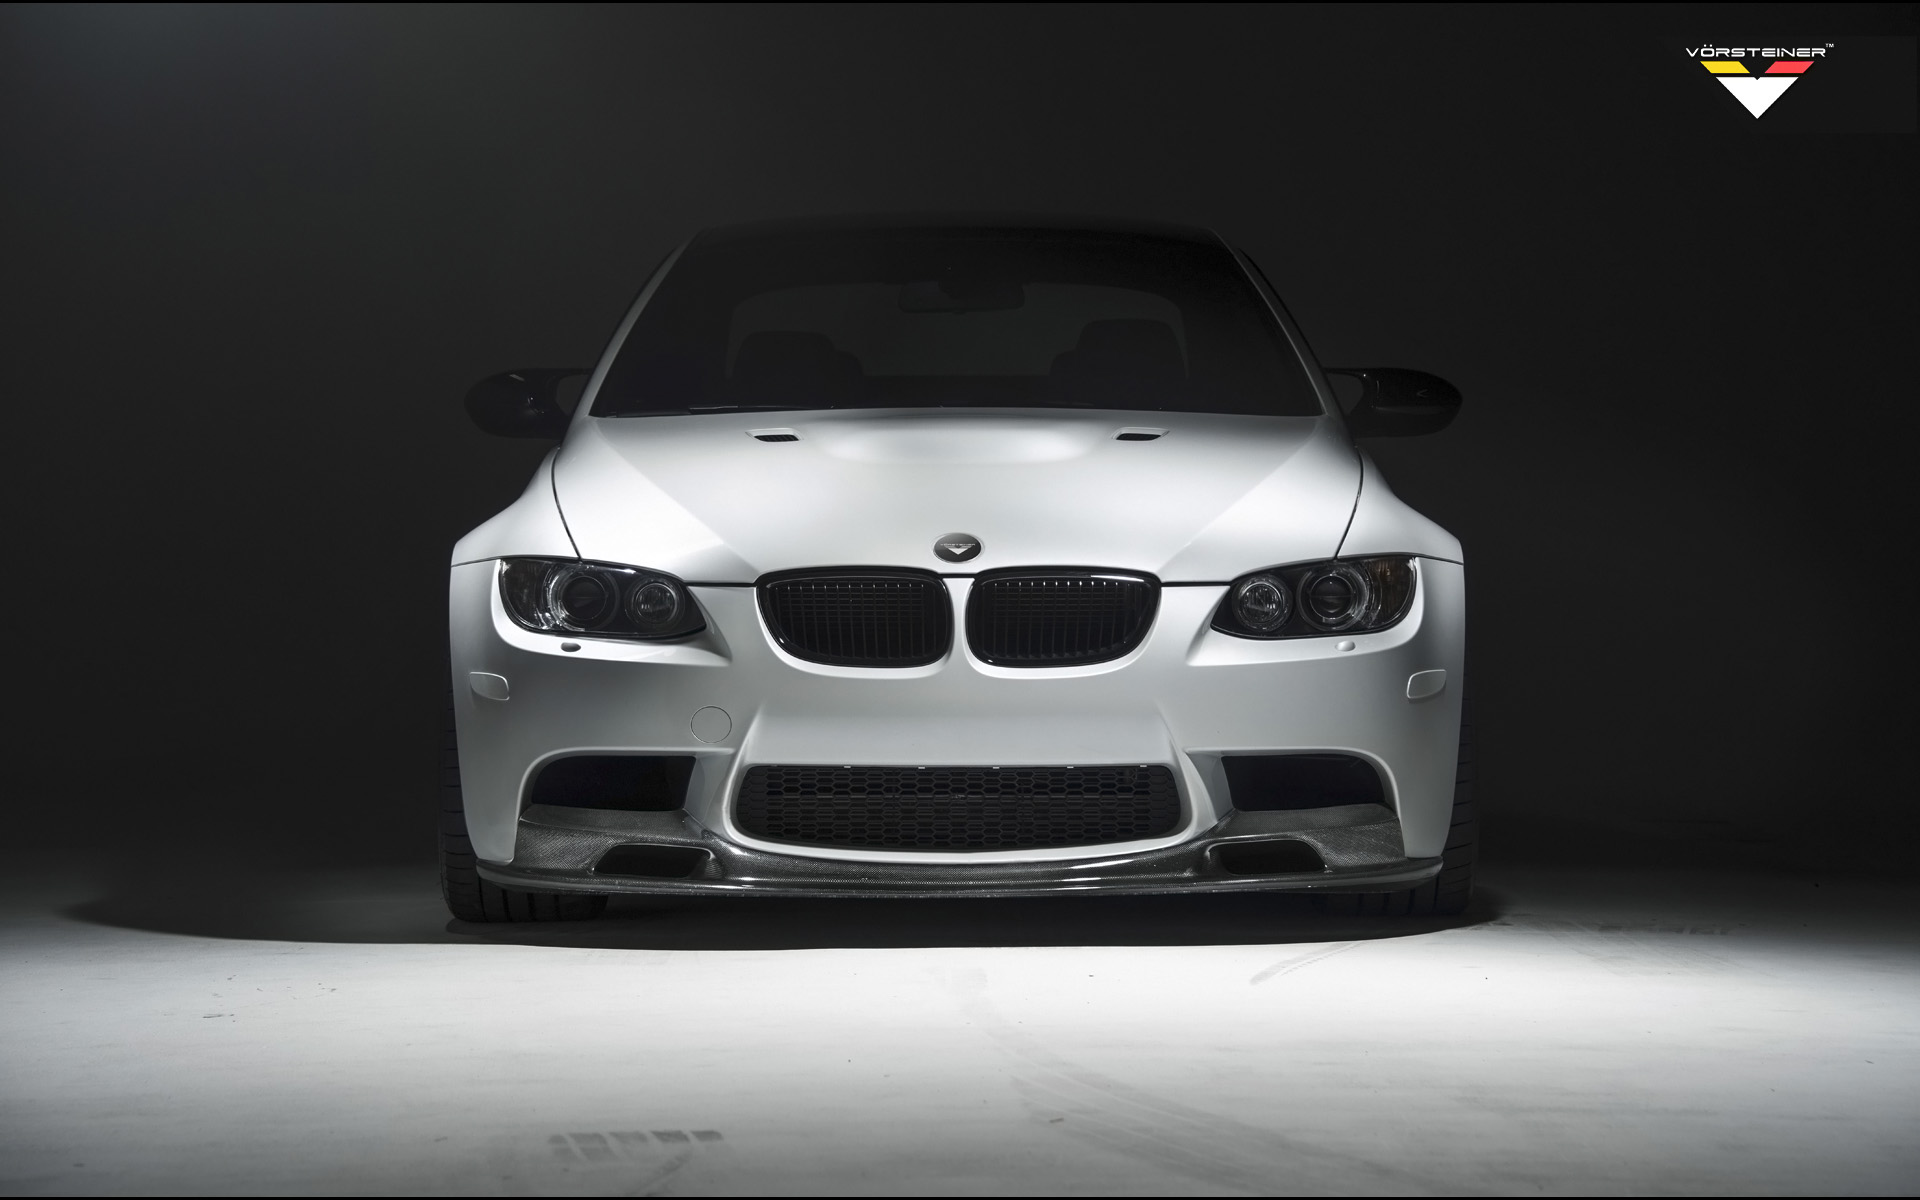 2014 vorsteiner bmw e92 m3 wallpaper hd car wallpapers id 4462. Black Bedroom Furniture Sets. Home Design Ideas